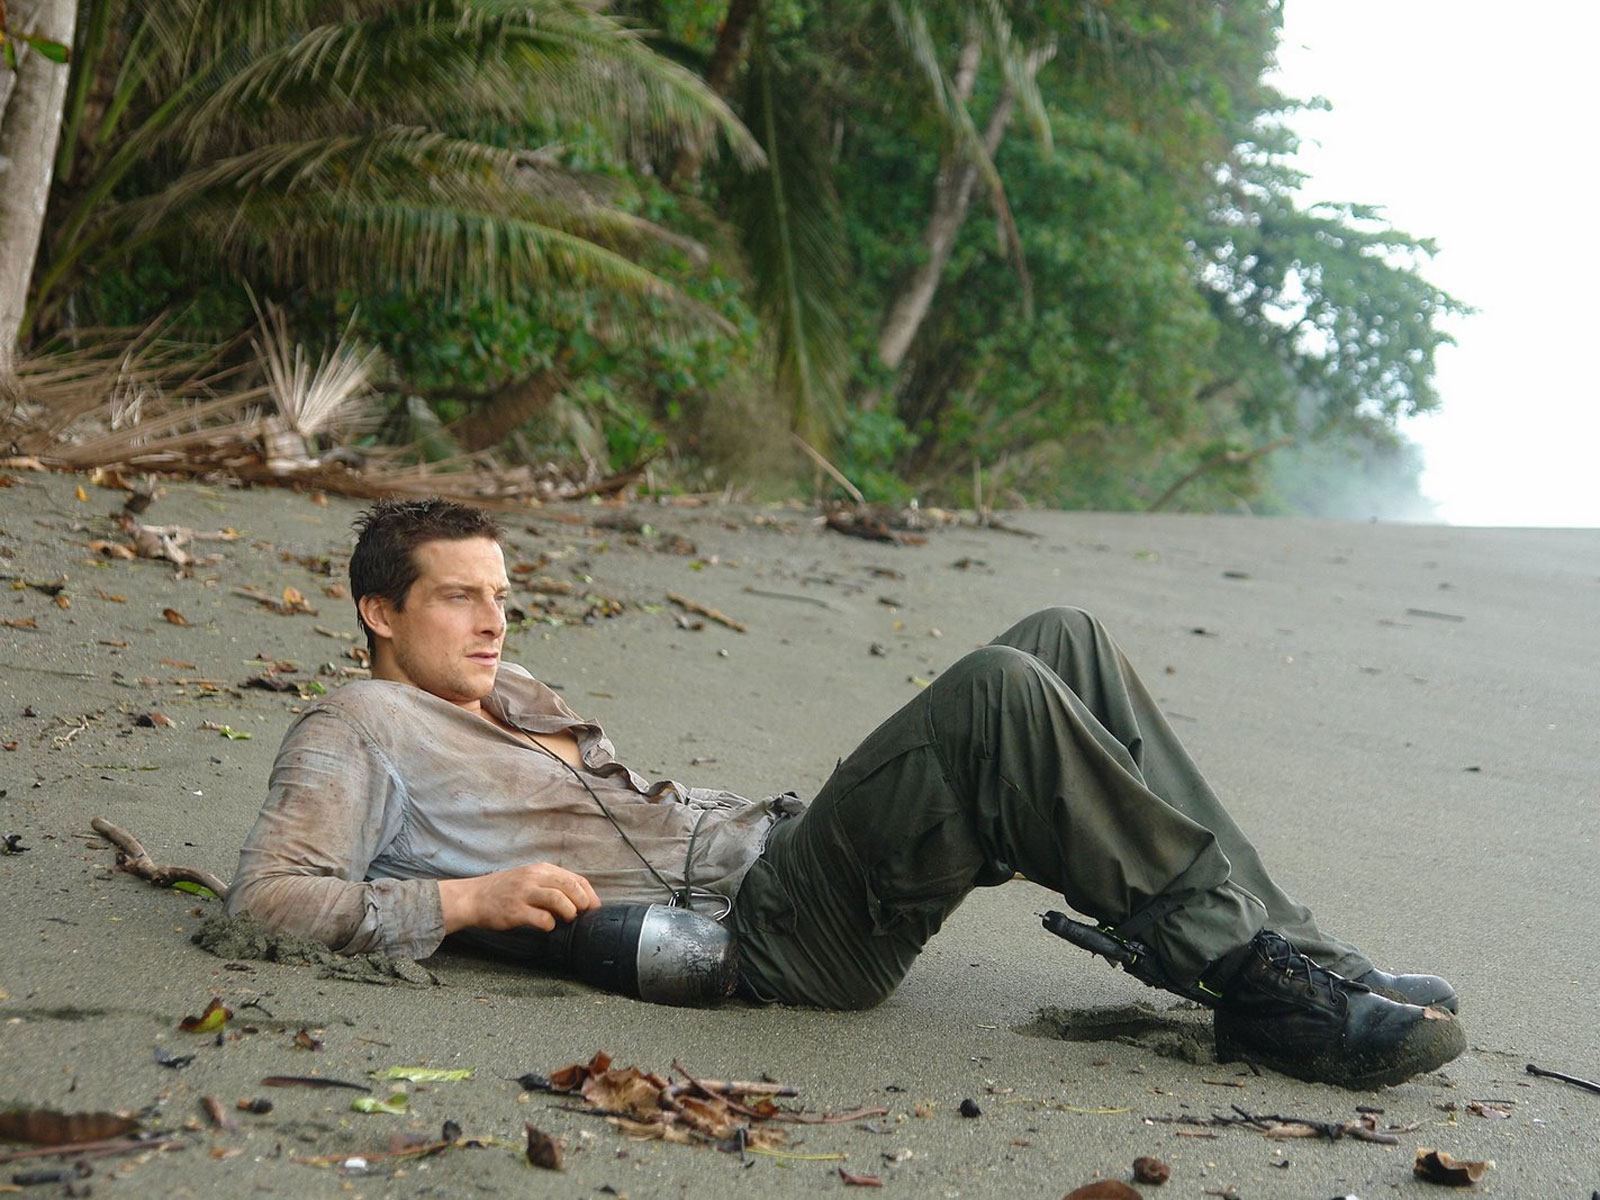 Bear grylls picture image 8